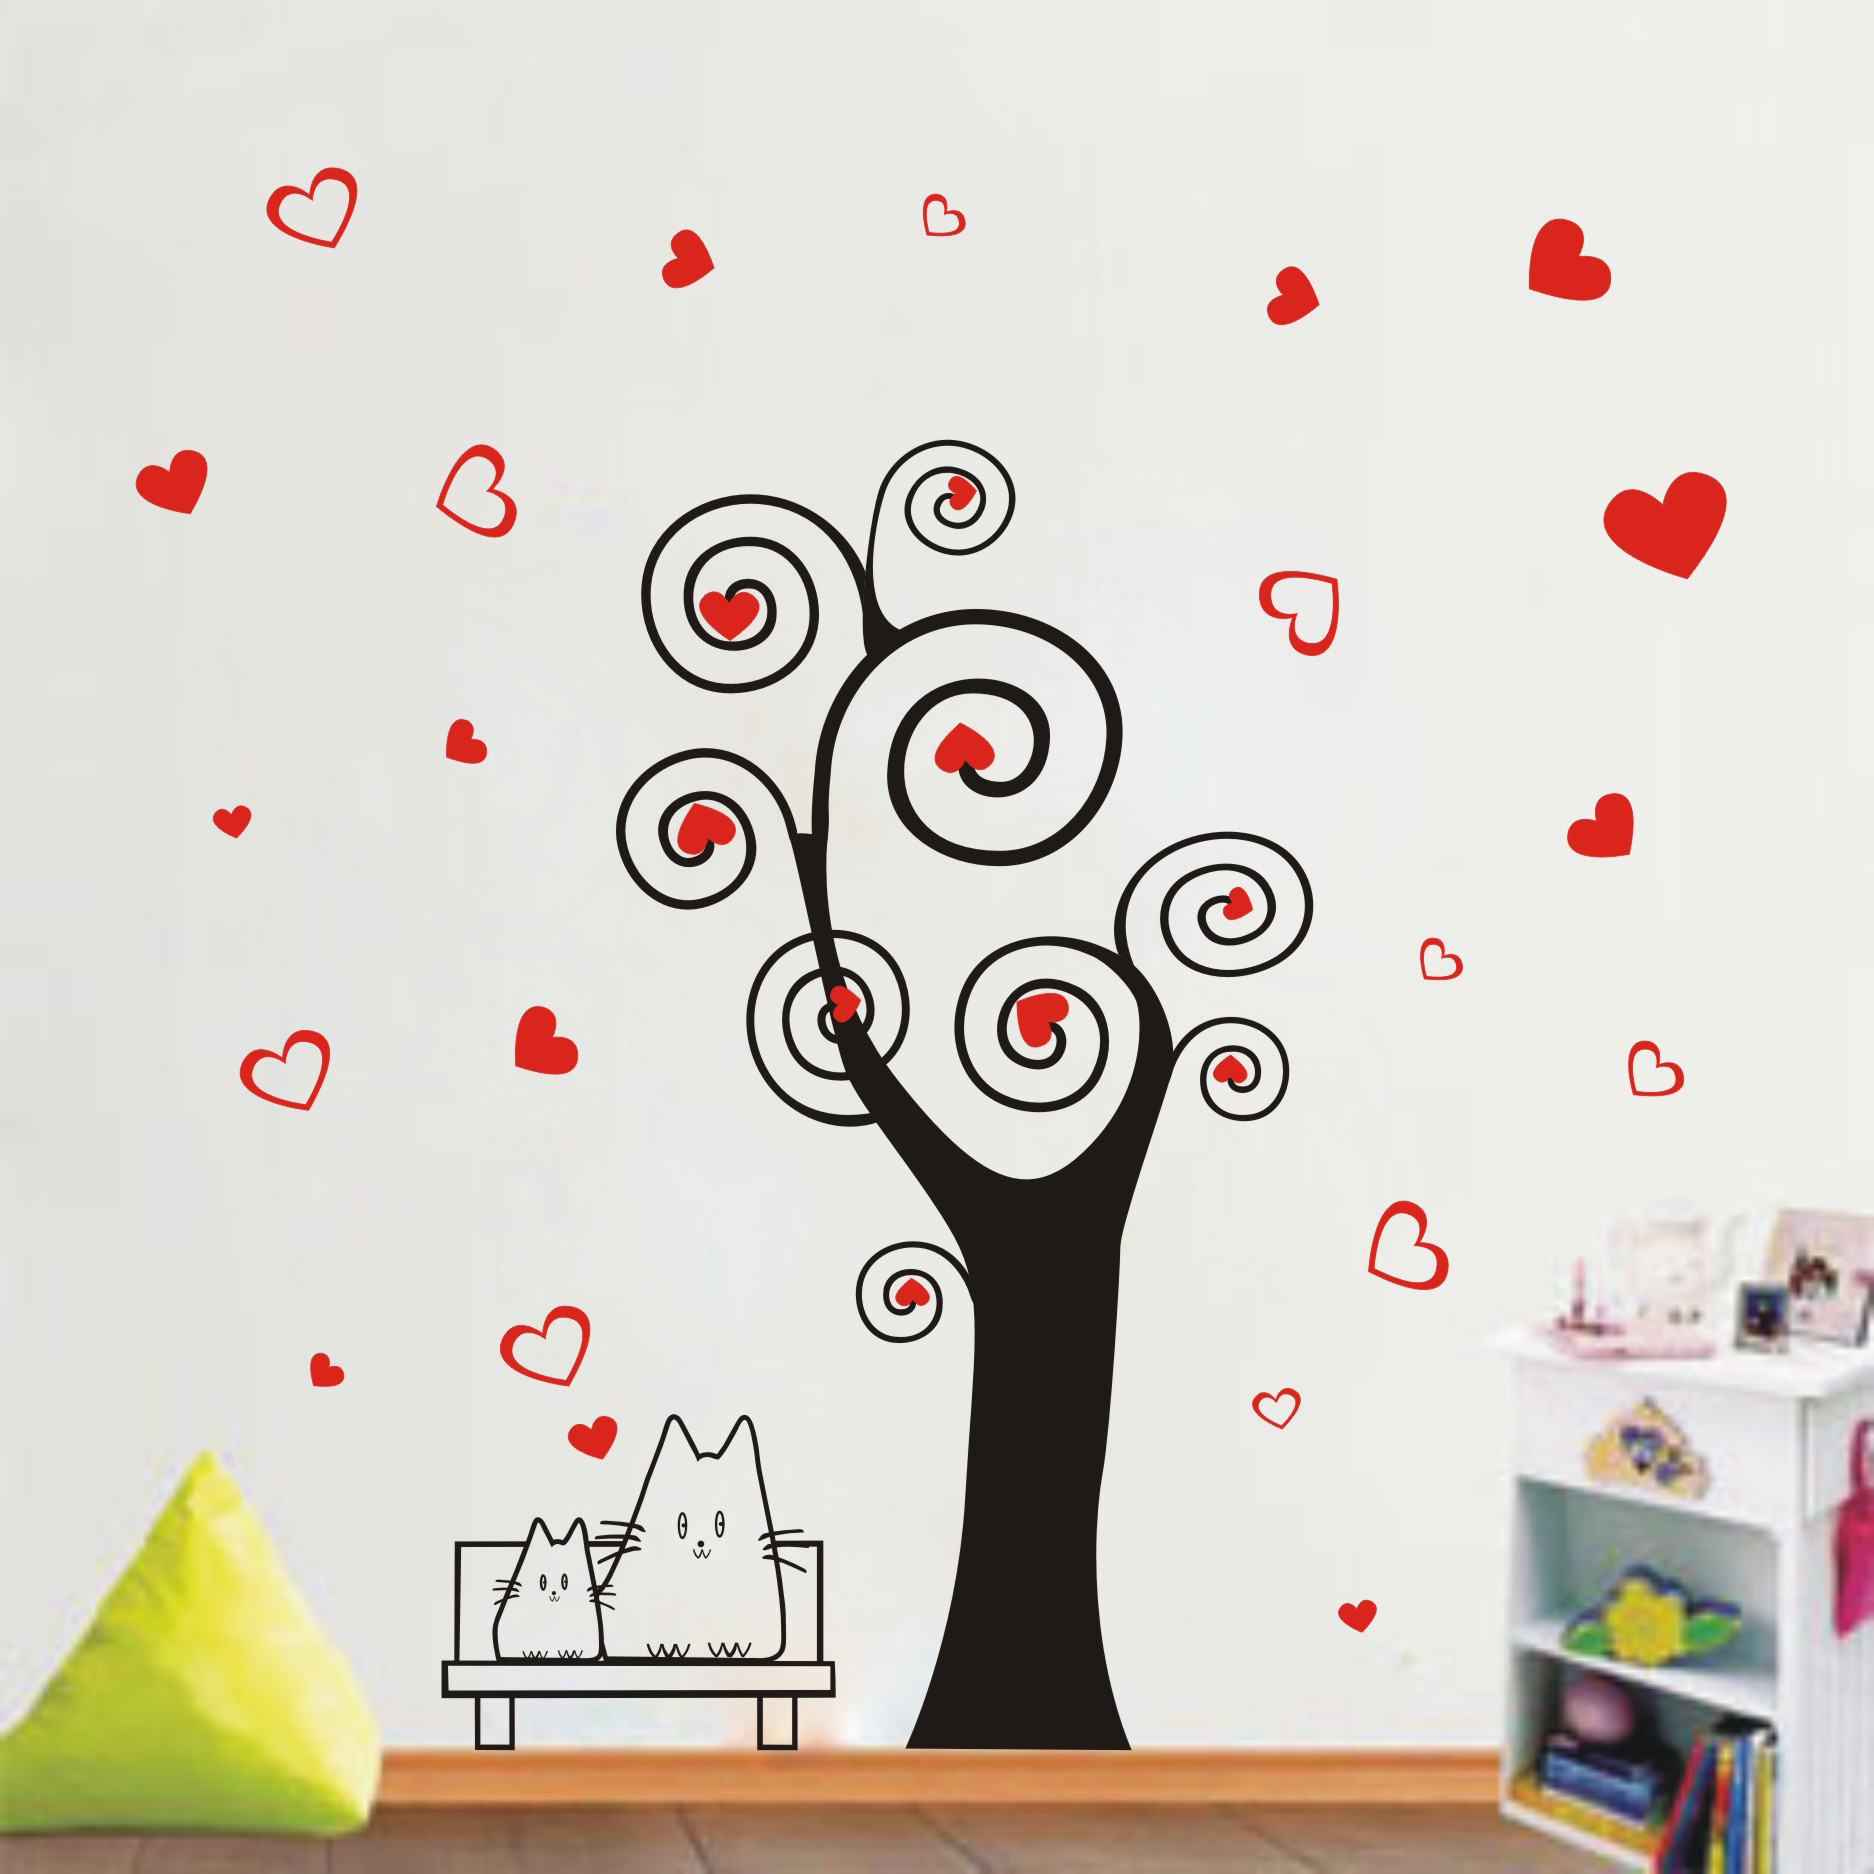 Wishing tree special removable wall stickers romantic bedroom living room tv wall stickers creative home decorations